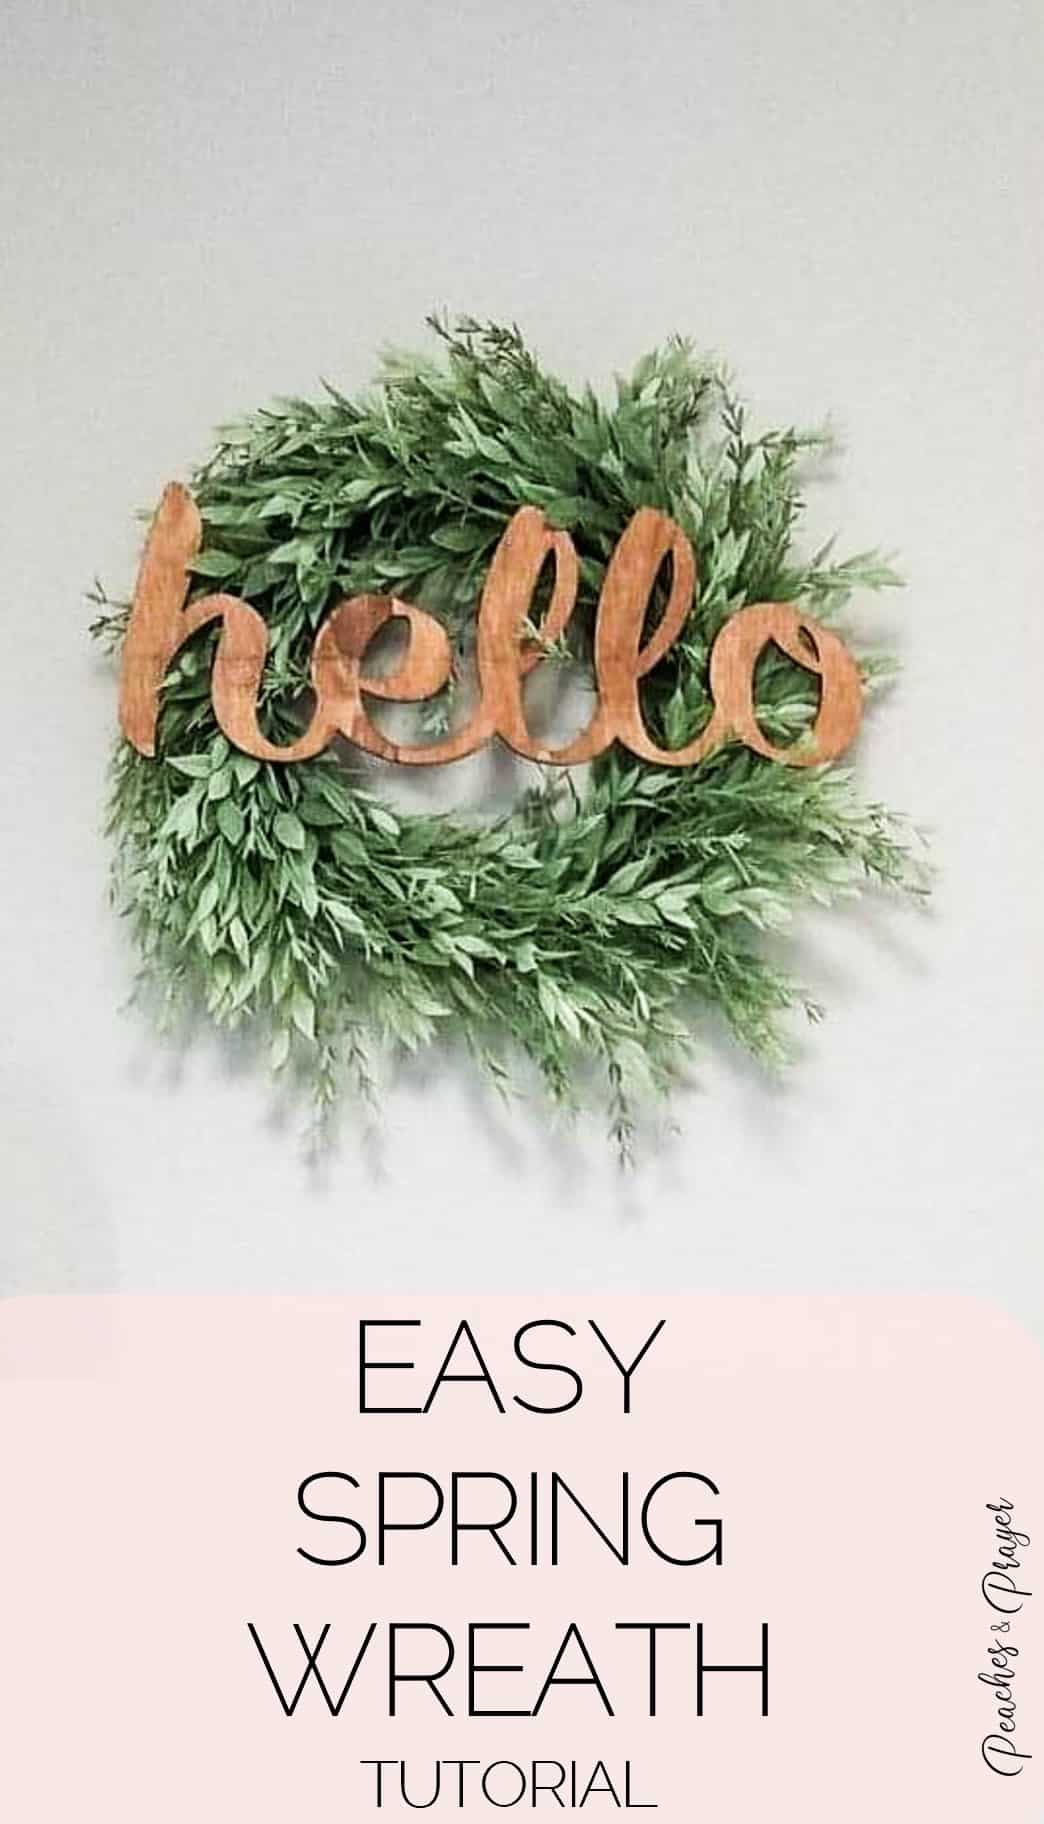 Easy Spring Wreath Tutorial